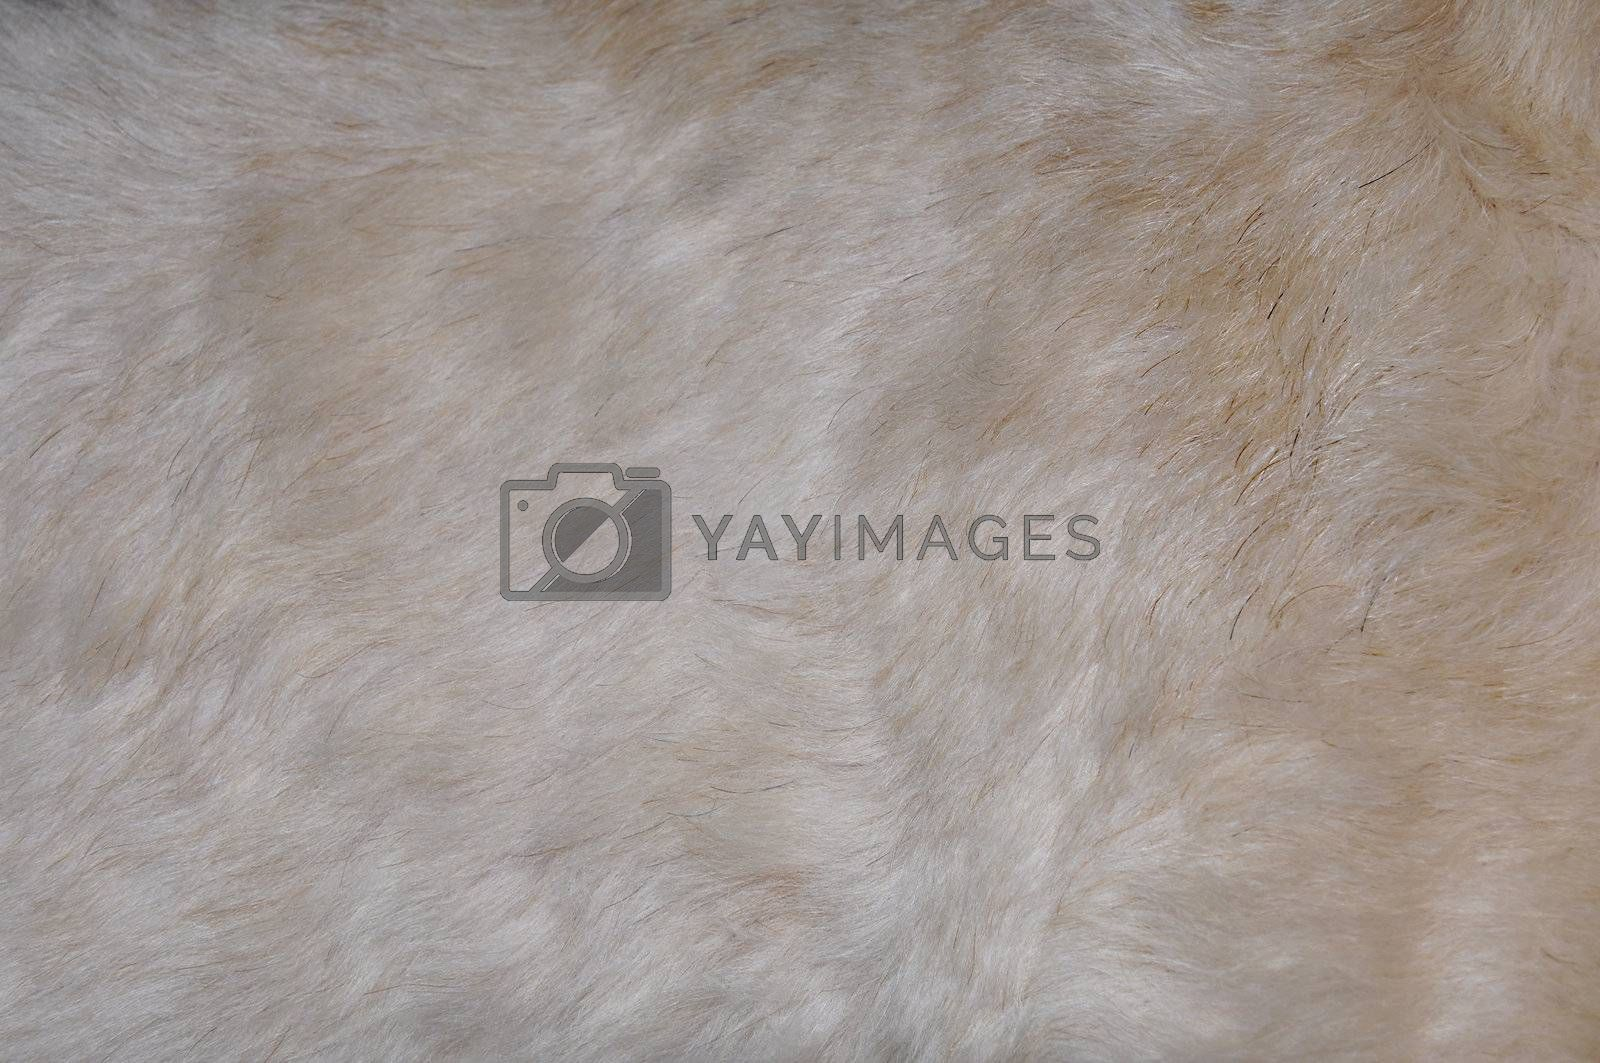 Royalty free image of dog hair abstract by cfarmer